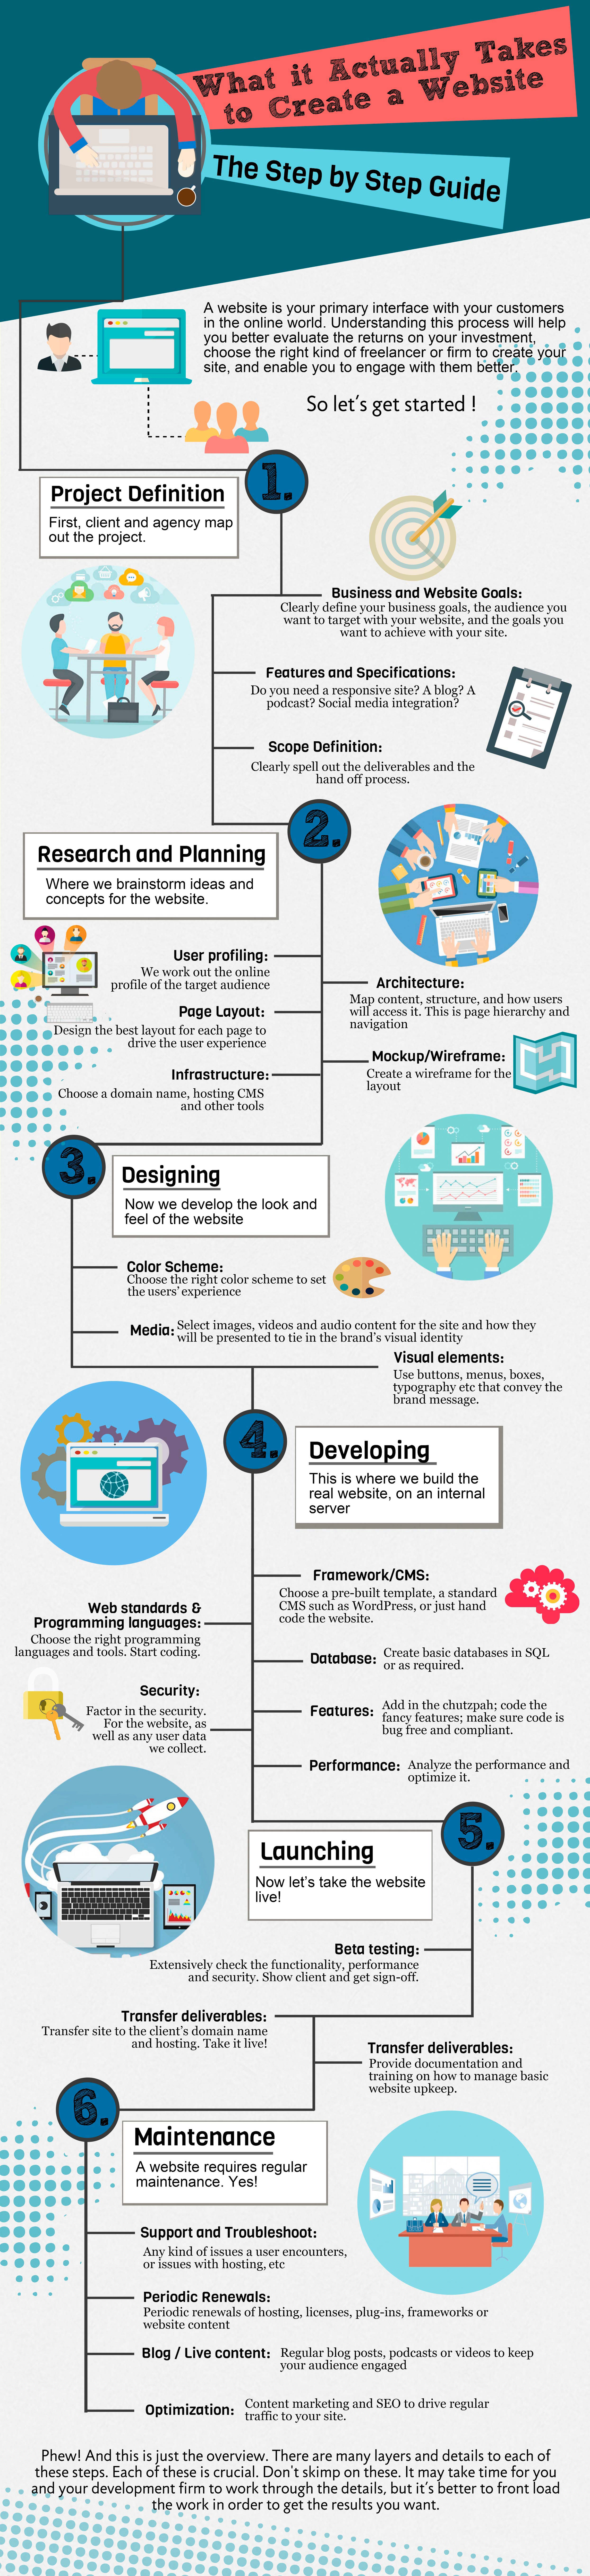 Infographic: The Client's Guide to Creating a Website ...